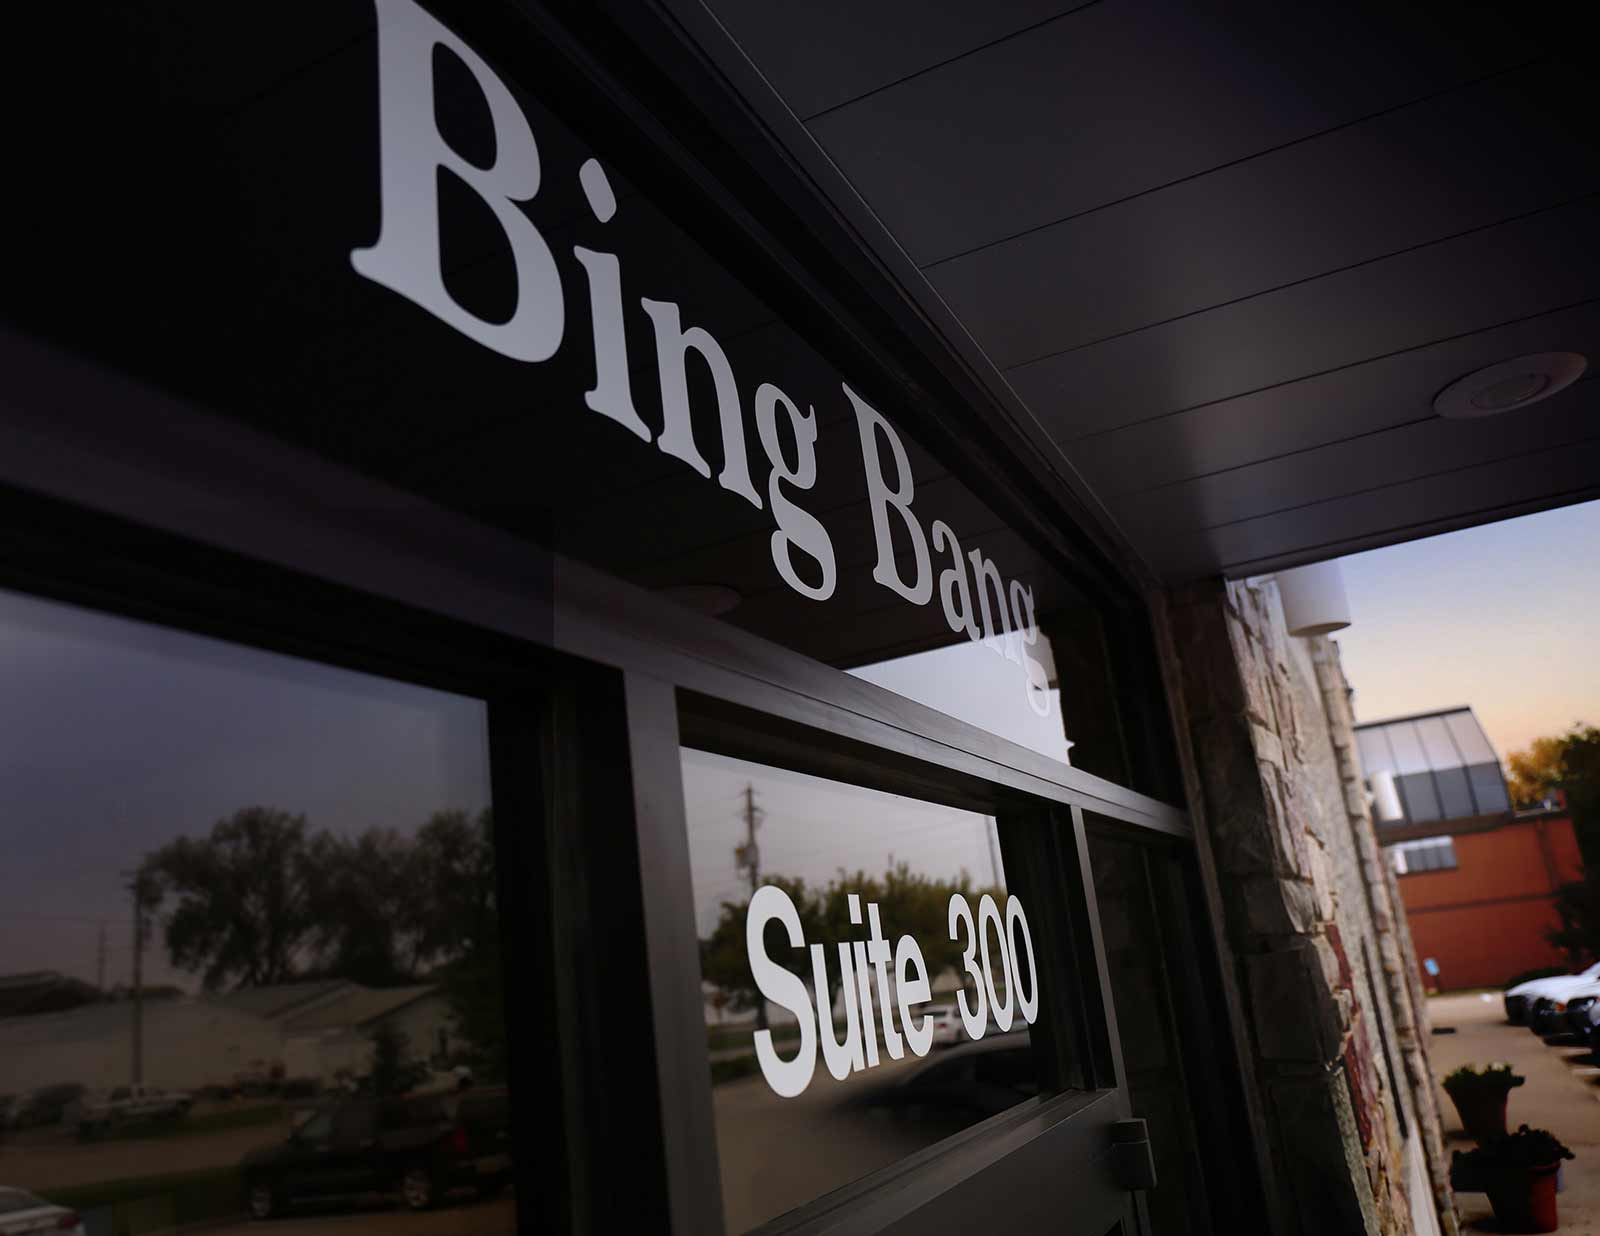 Bing Bang is a Des moines video production and marketing agency